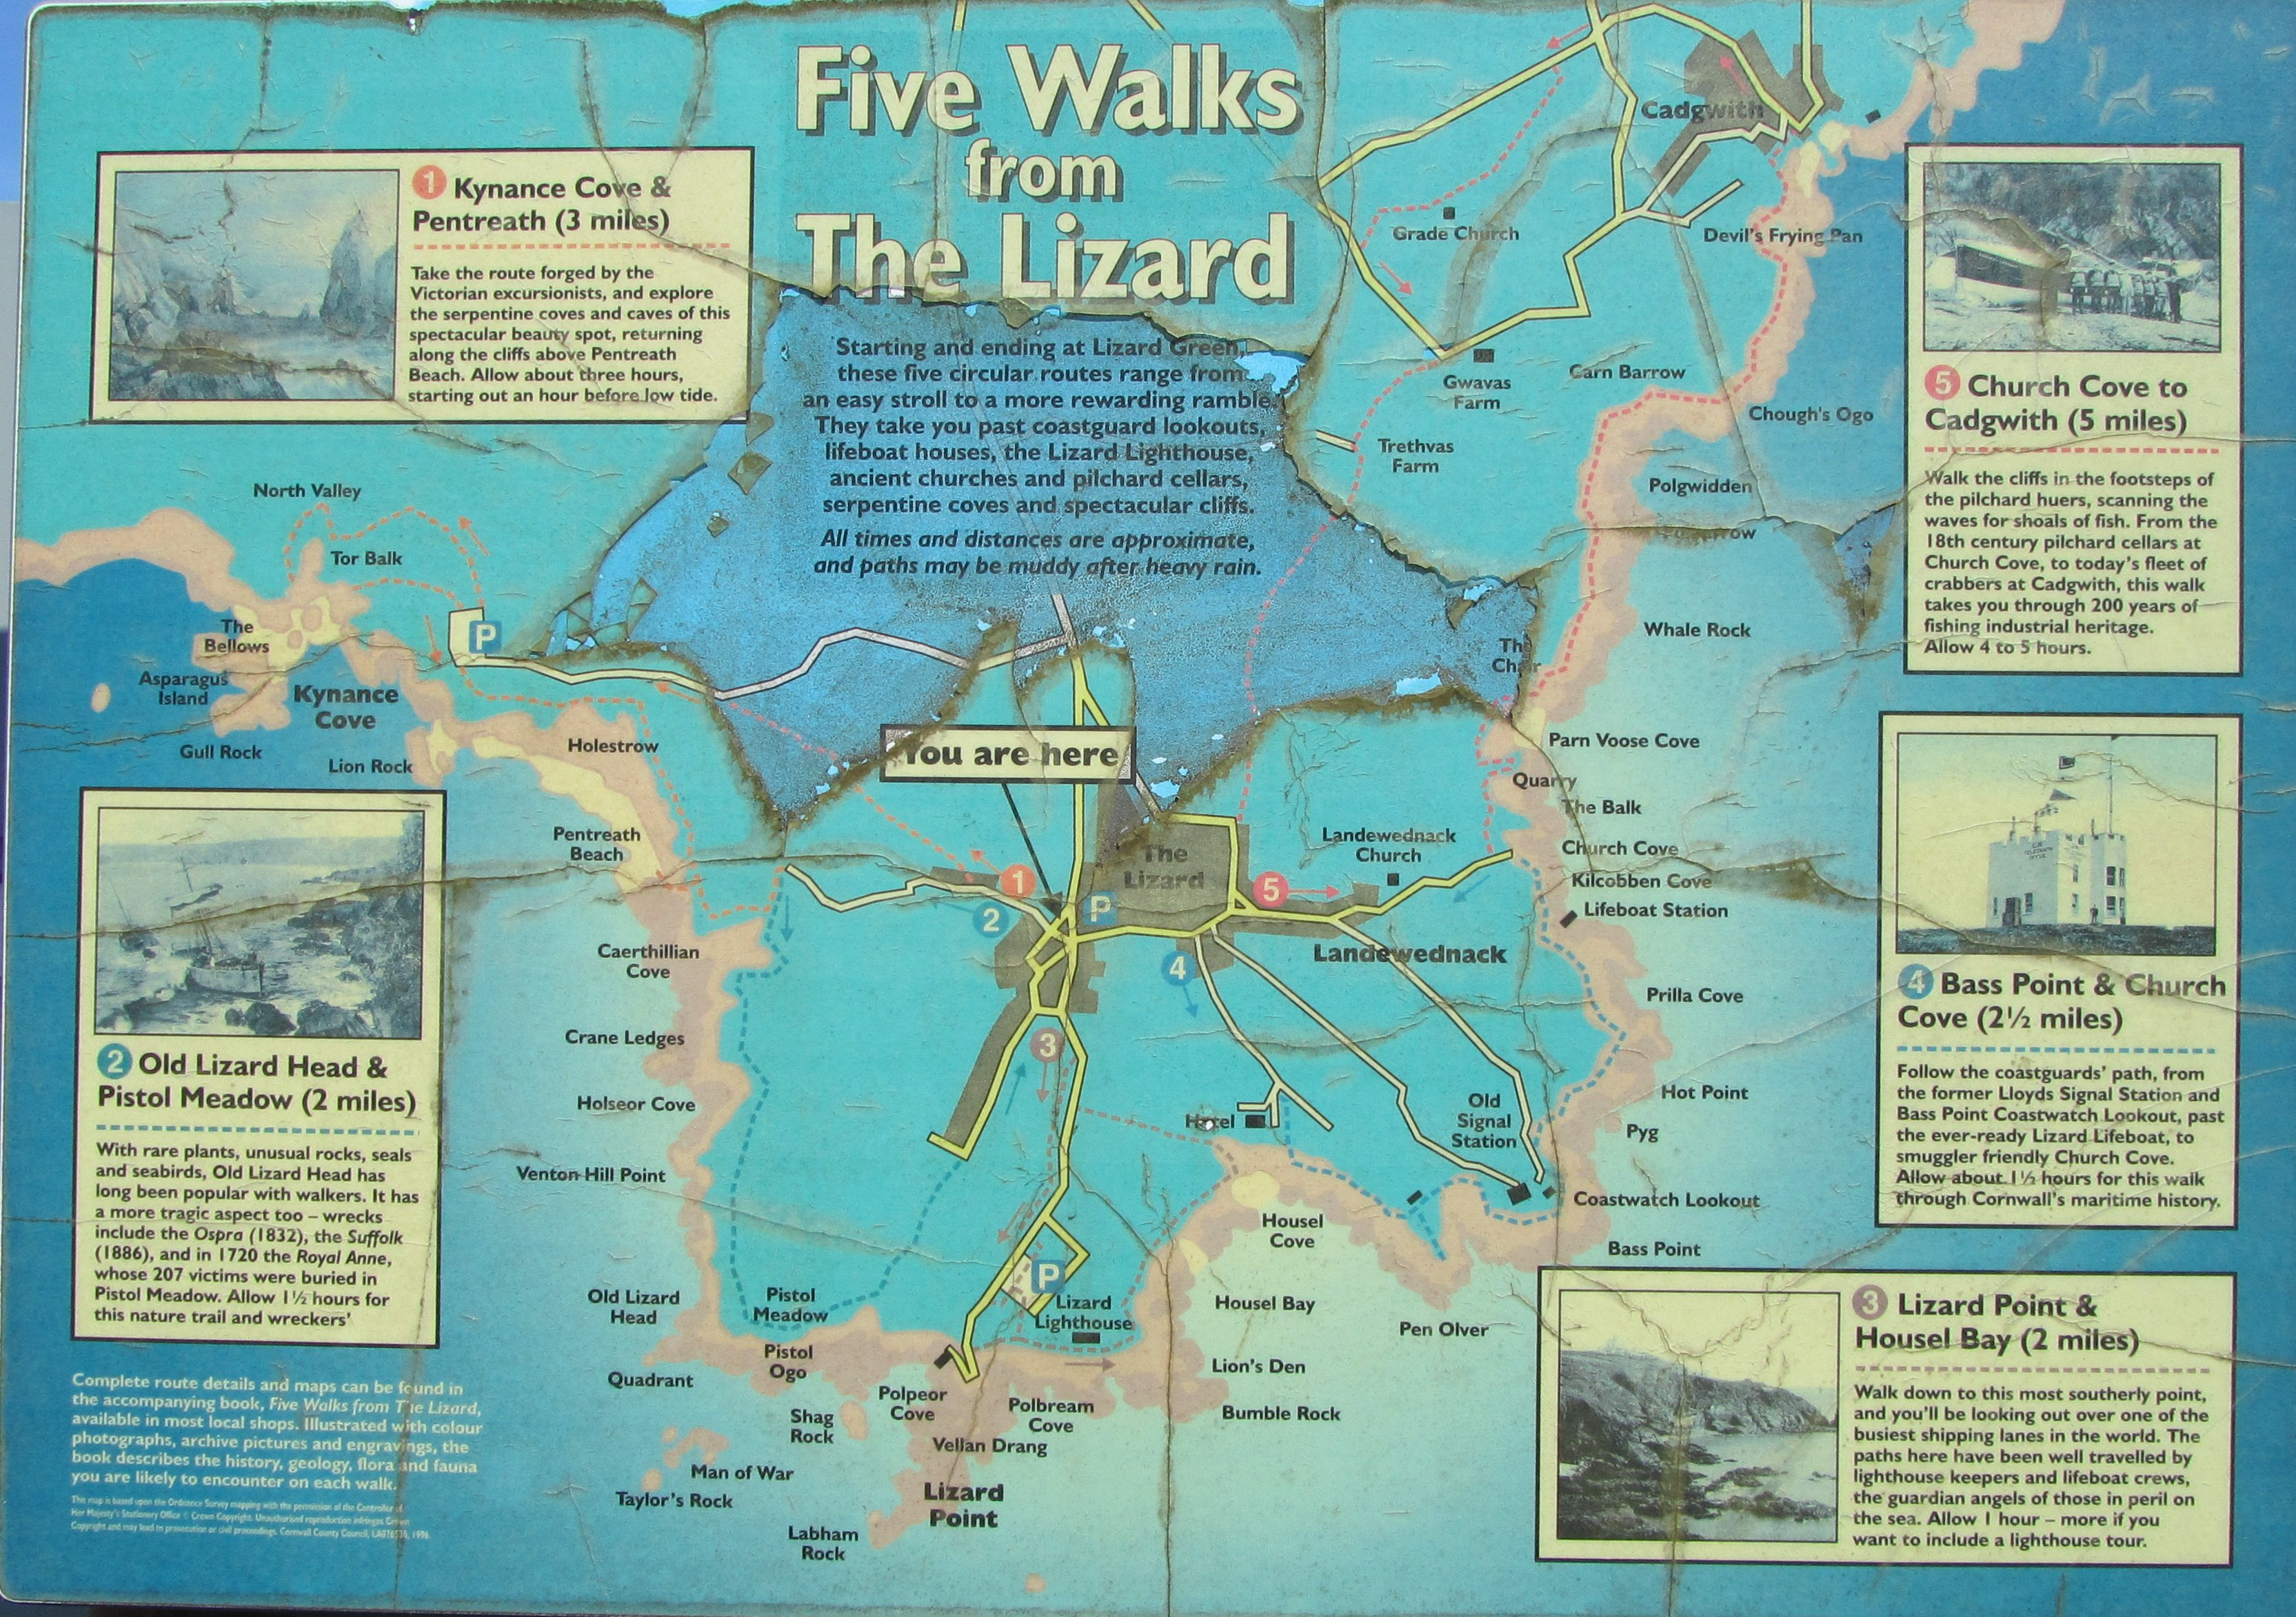 Some of the walks around the Lizard, including Church Cove.